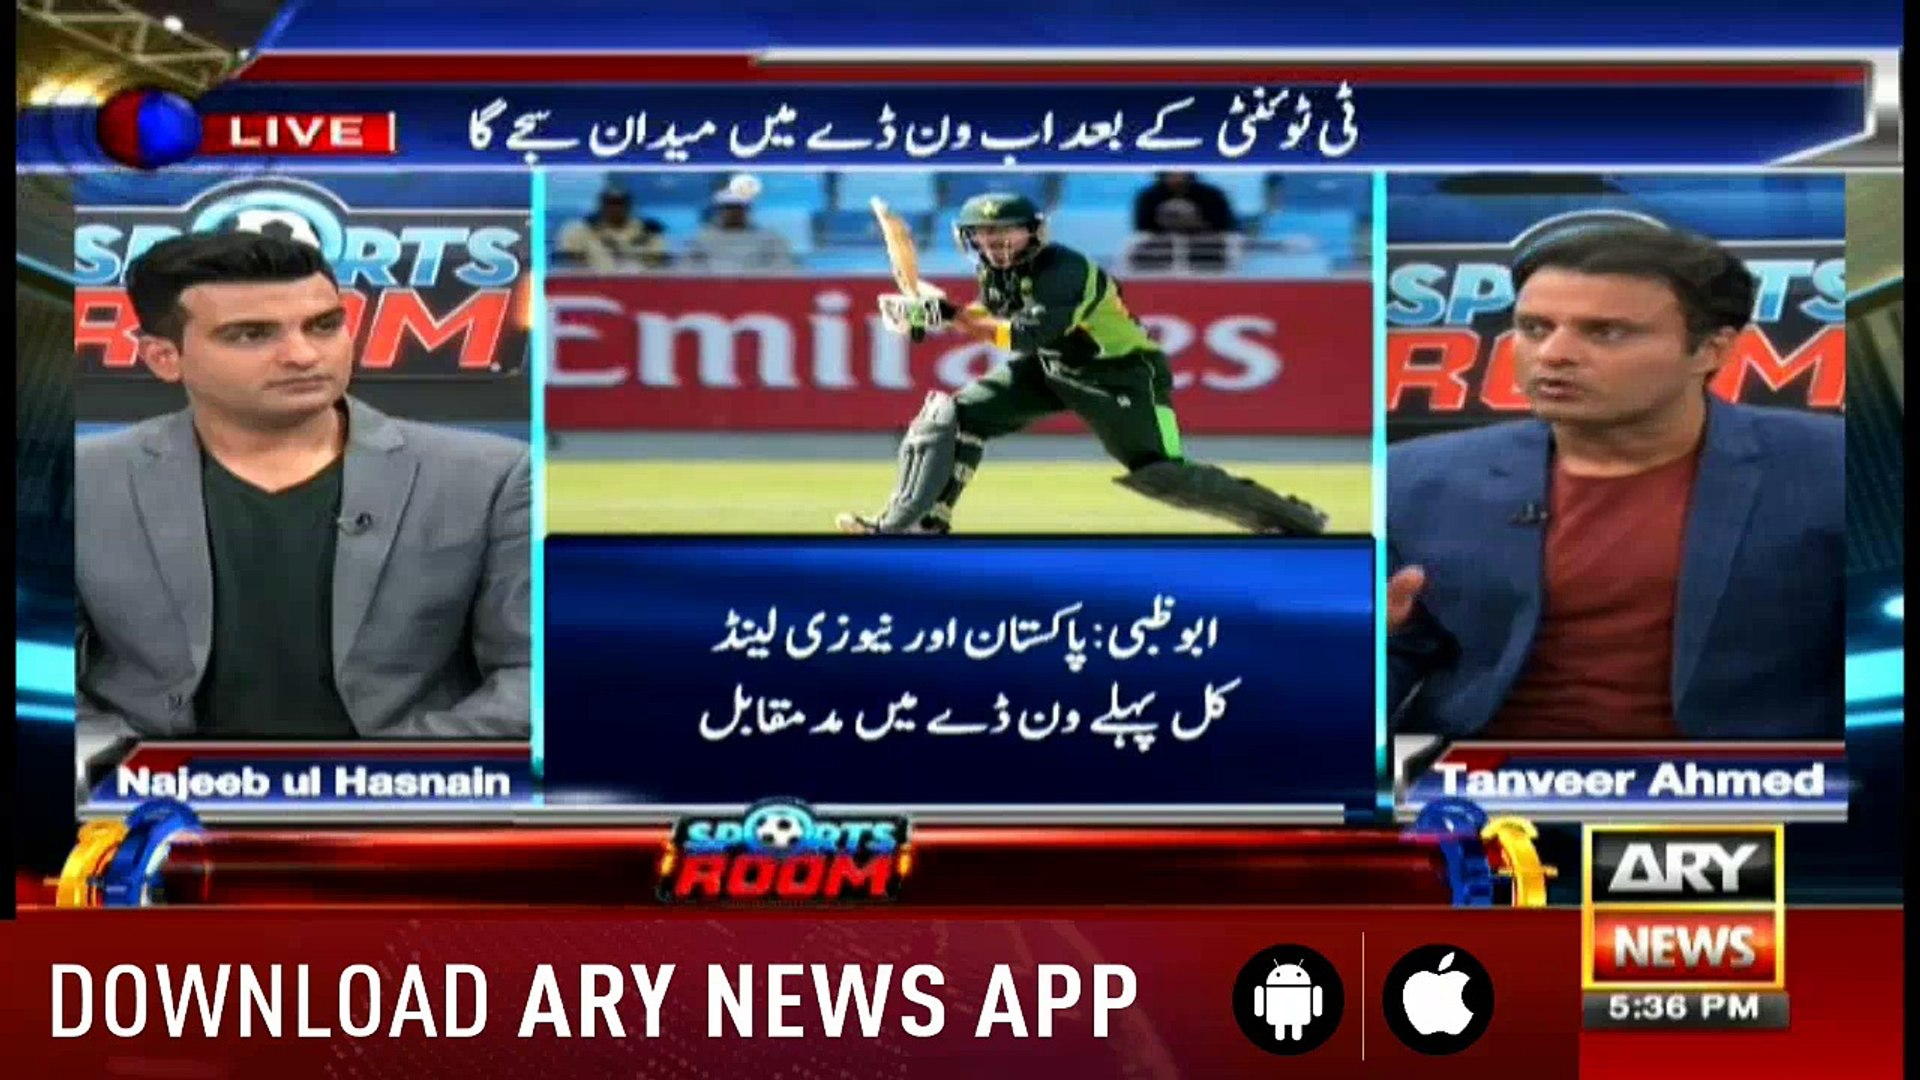 Sports Room | Najeeb-ul-Husnain | ARYNews | 6 November 2018